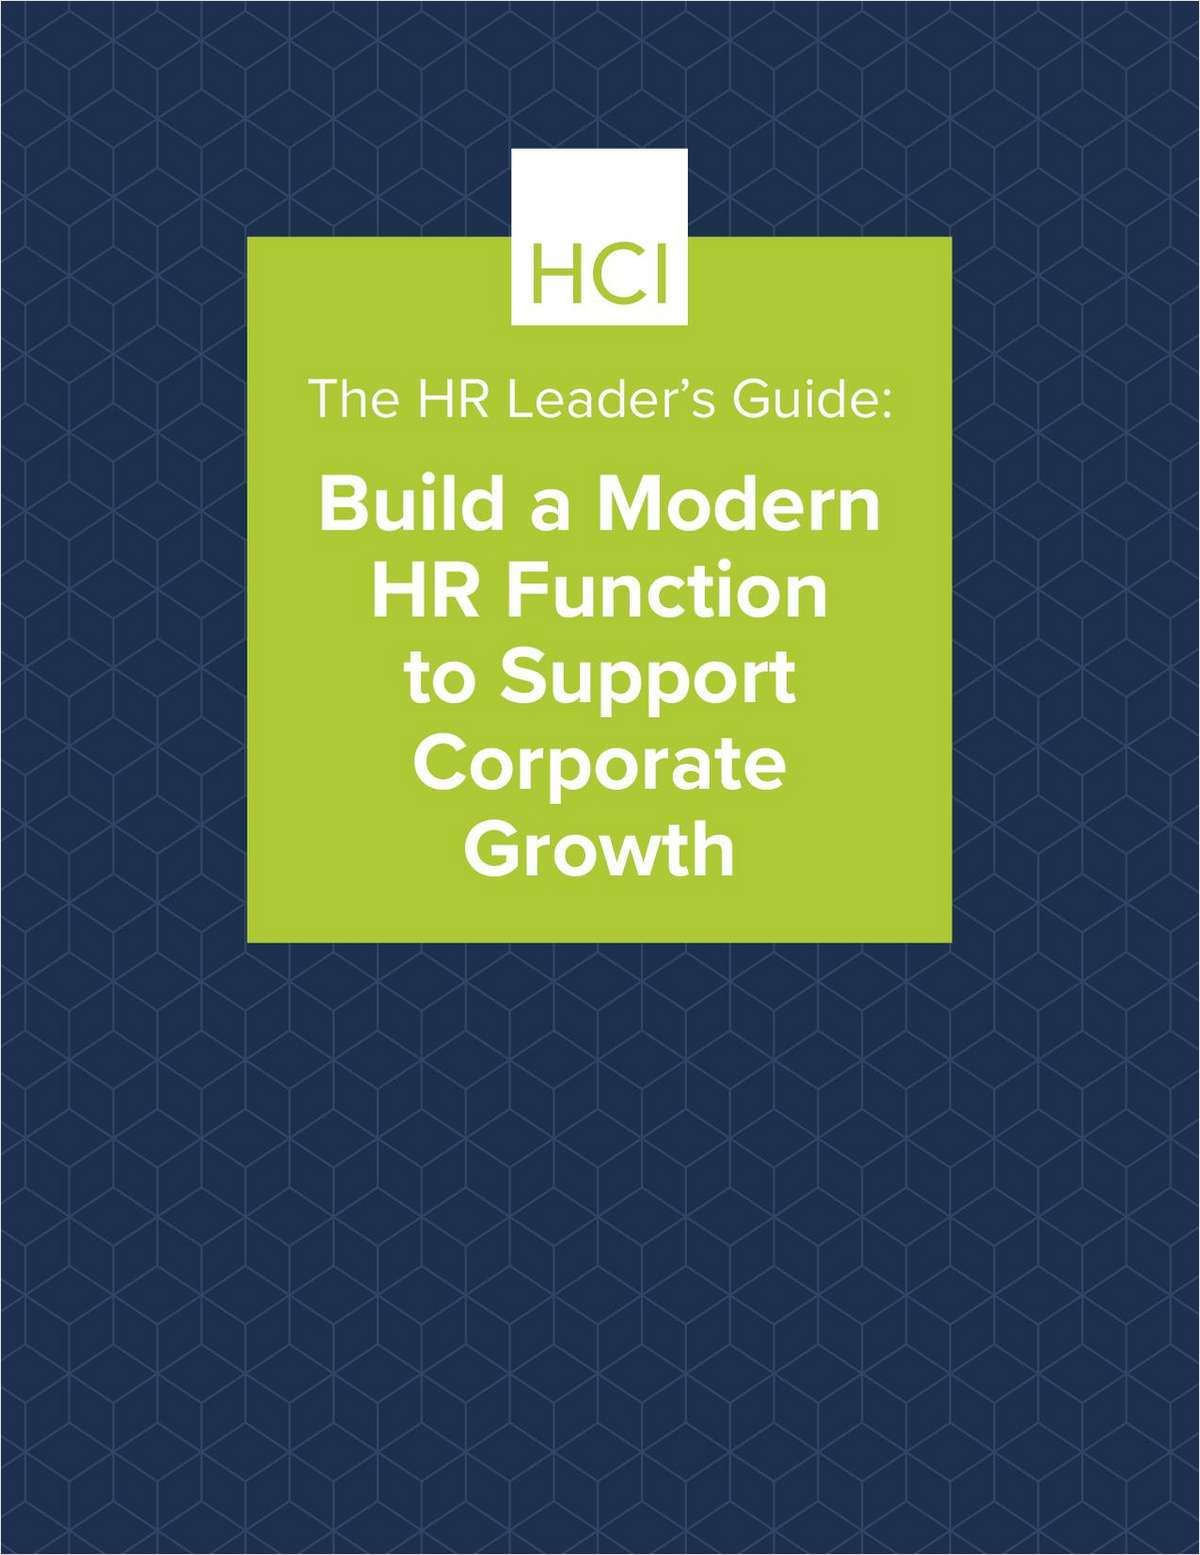 hr practitioner guide The 10th circuit practitioner's guide is a tool designed to help practitioners understand court rules and procedures, and also includes information about the structure of the court, the judges of the 10th.